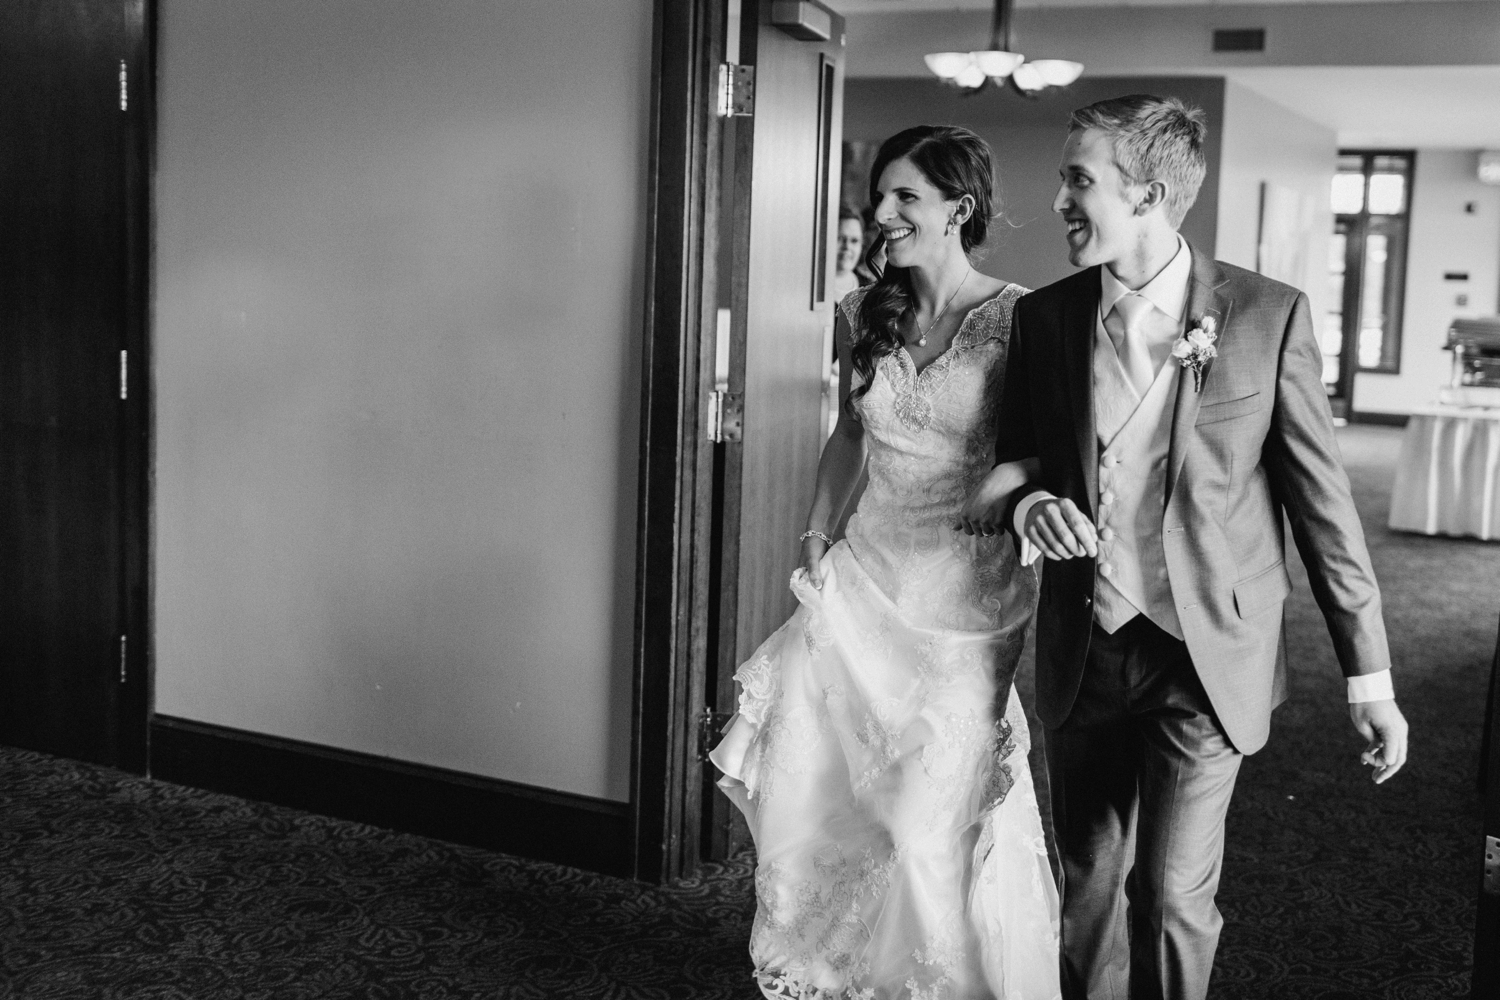 NCR_Country_Club_Kettering_Ohio_Wedding_Photography_Chloe_Luka_Photography_7196.jpg